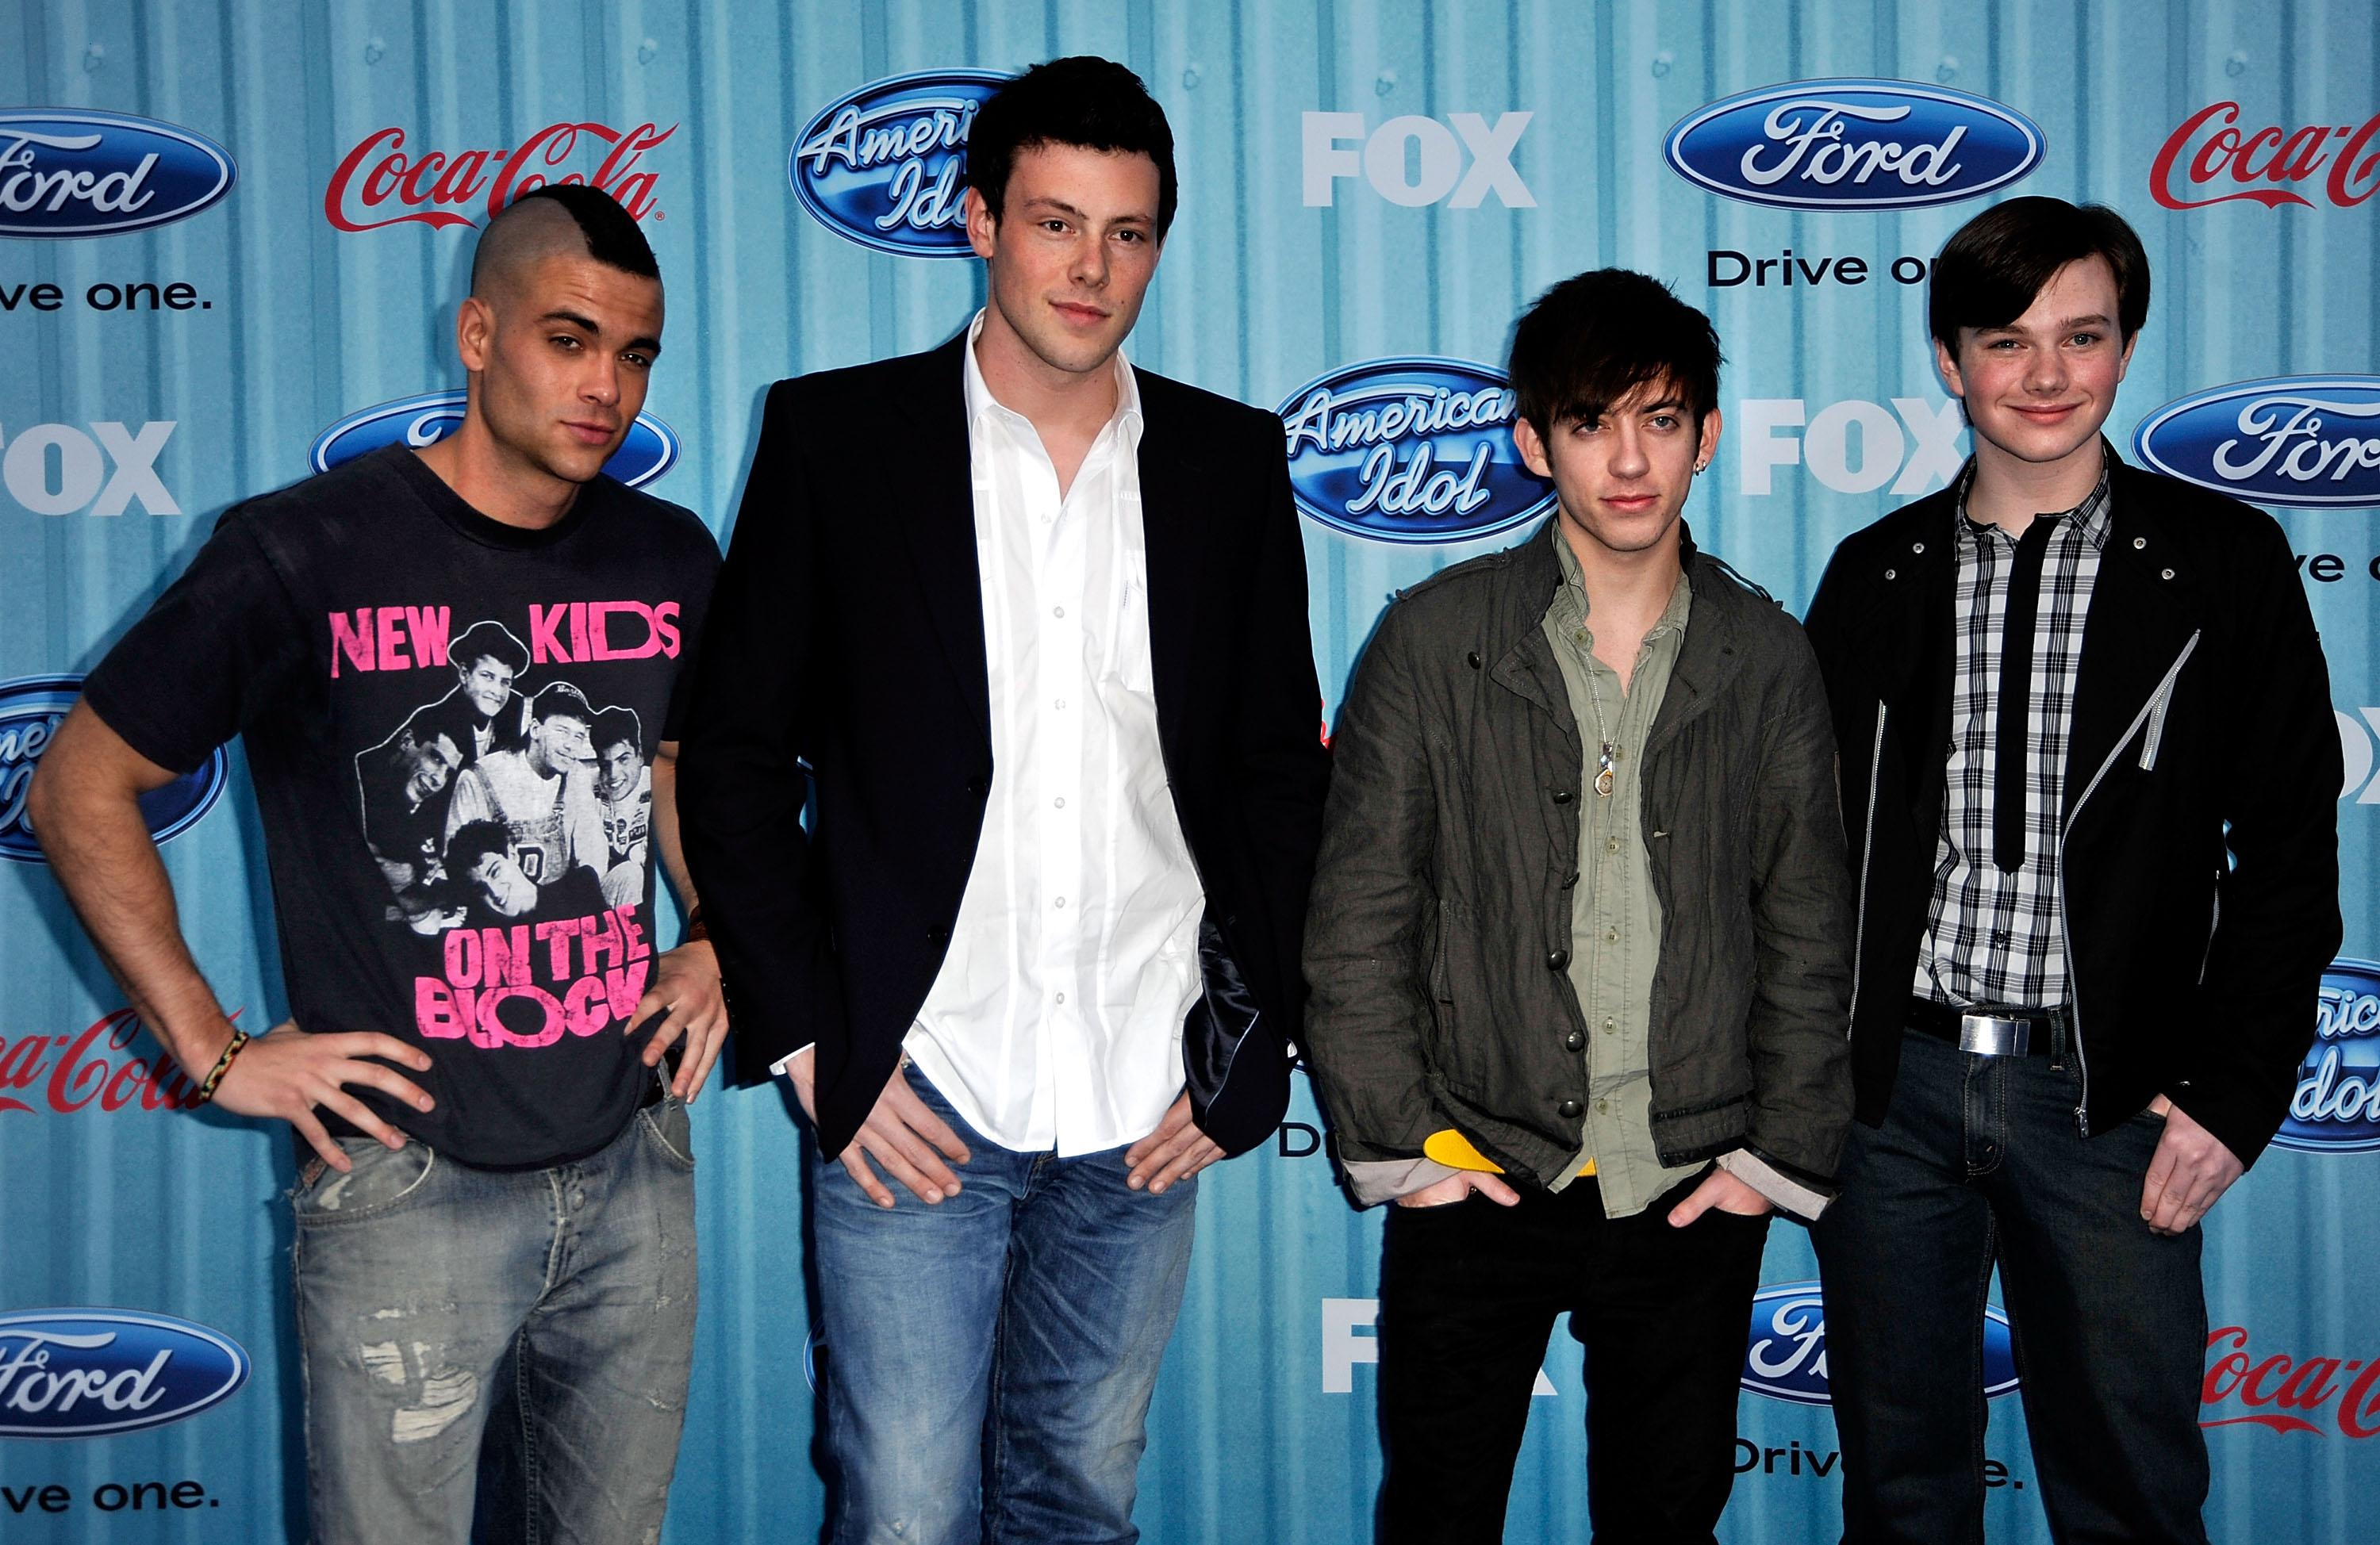 Salling with three other Glee stars - Cory Monteith, second left, died in 2013